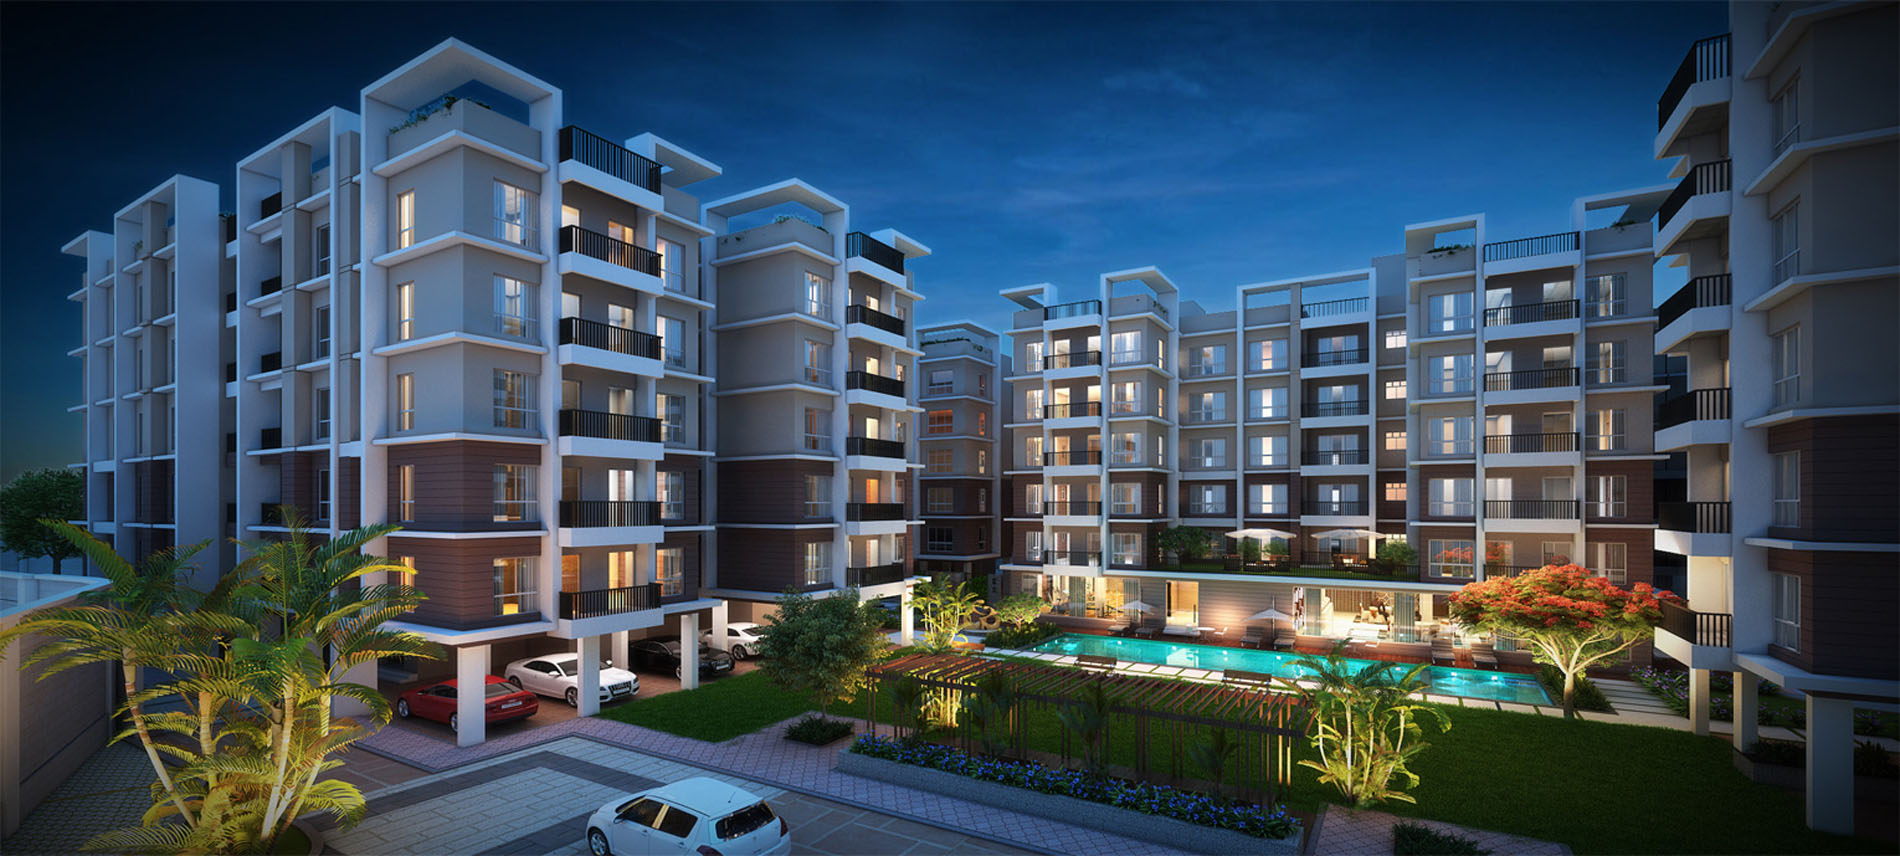 Buy Flats with Garden Swimming Pool near BT Road